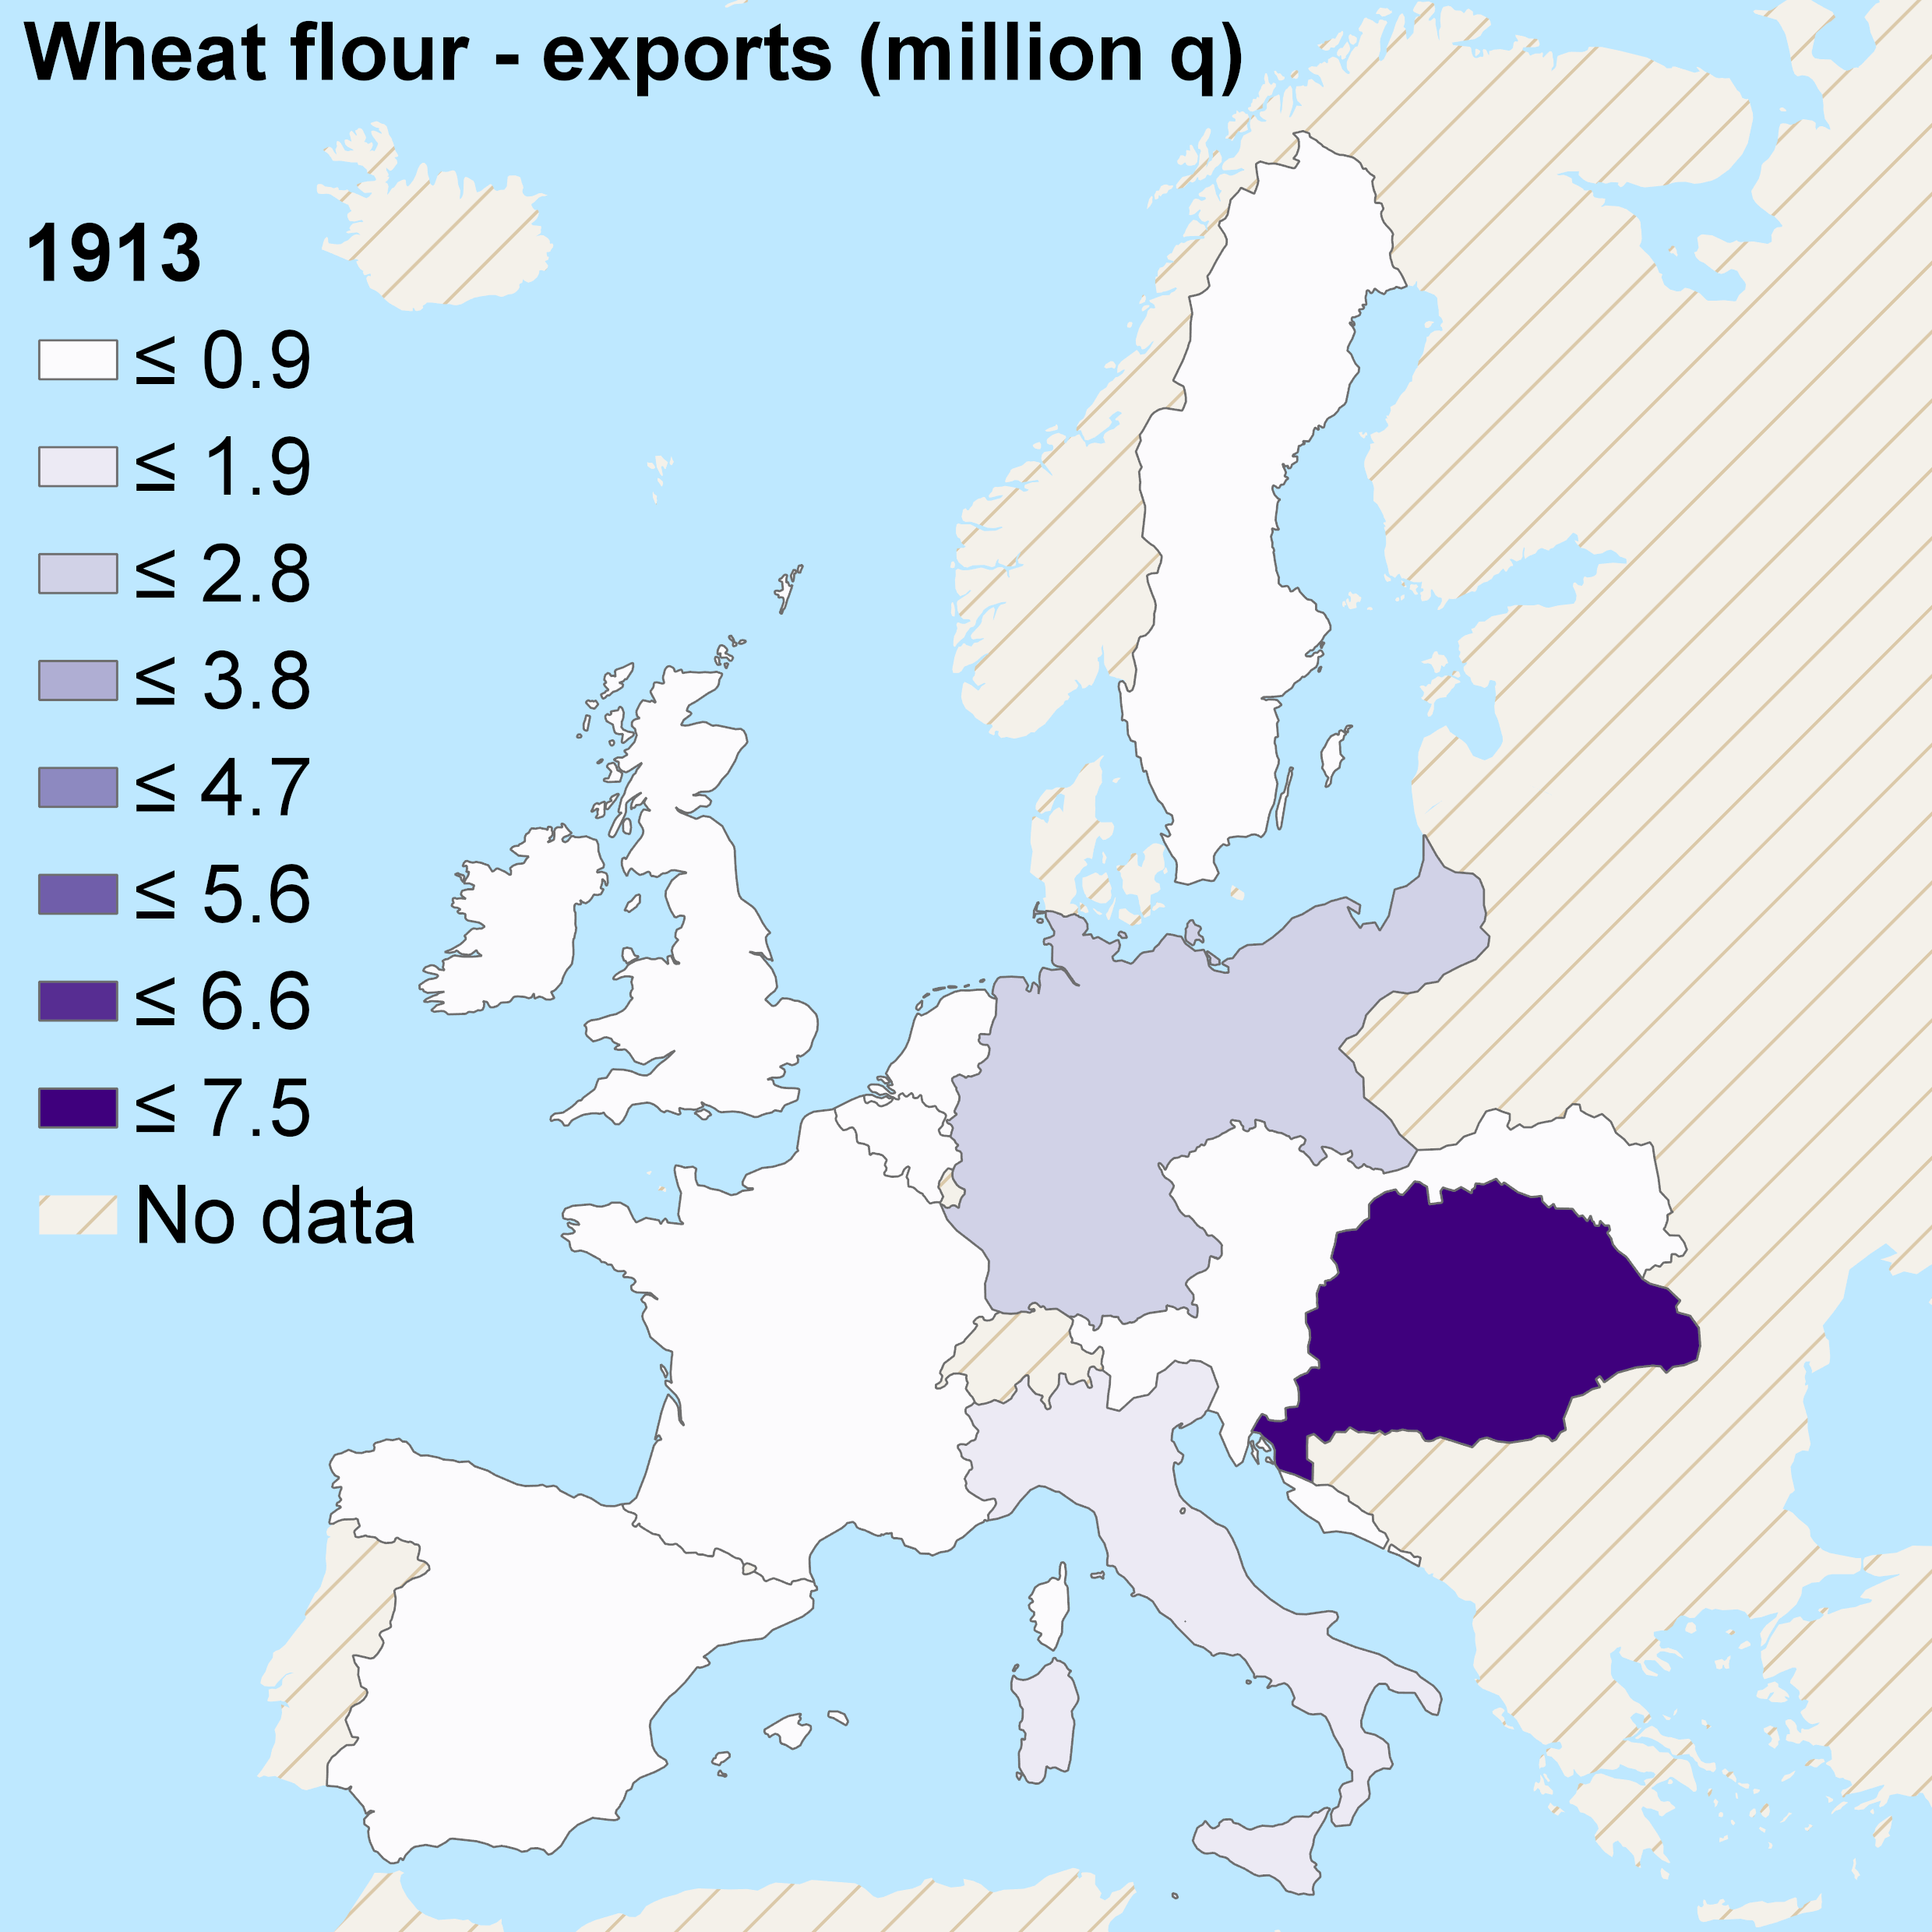 wheat-flour-exports-1913-v2